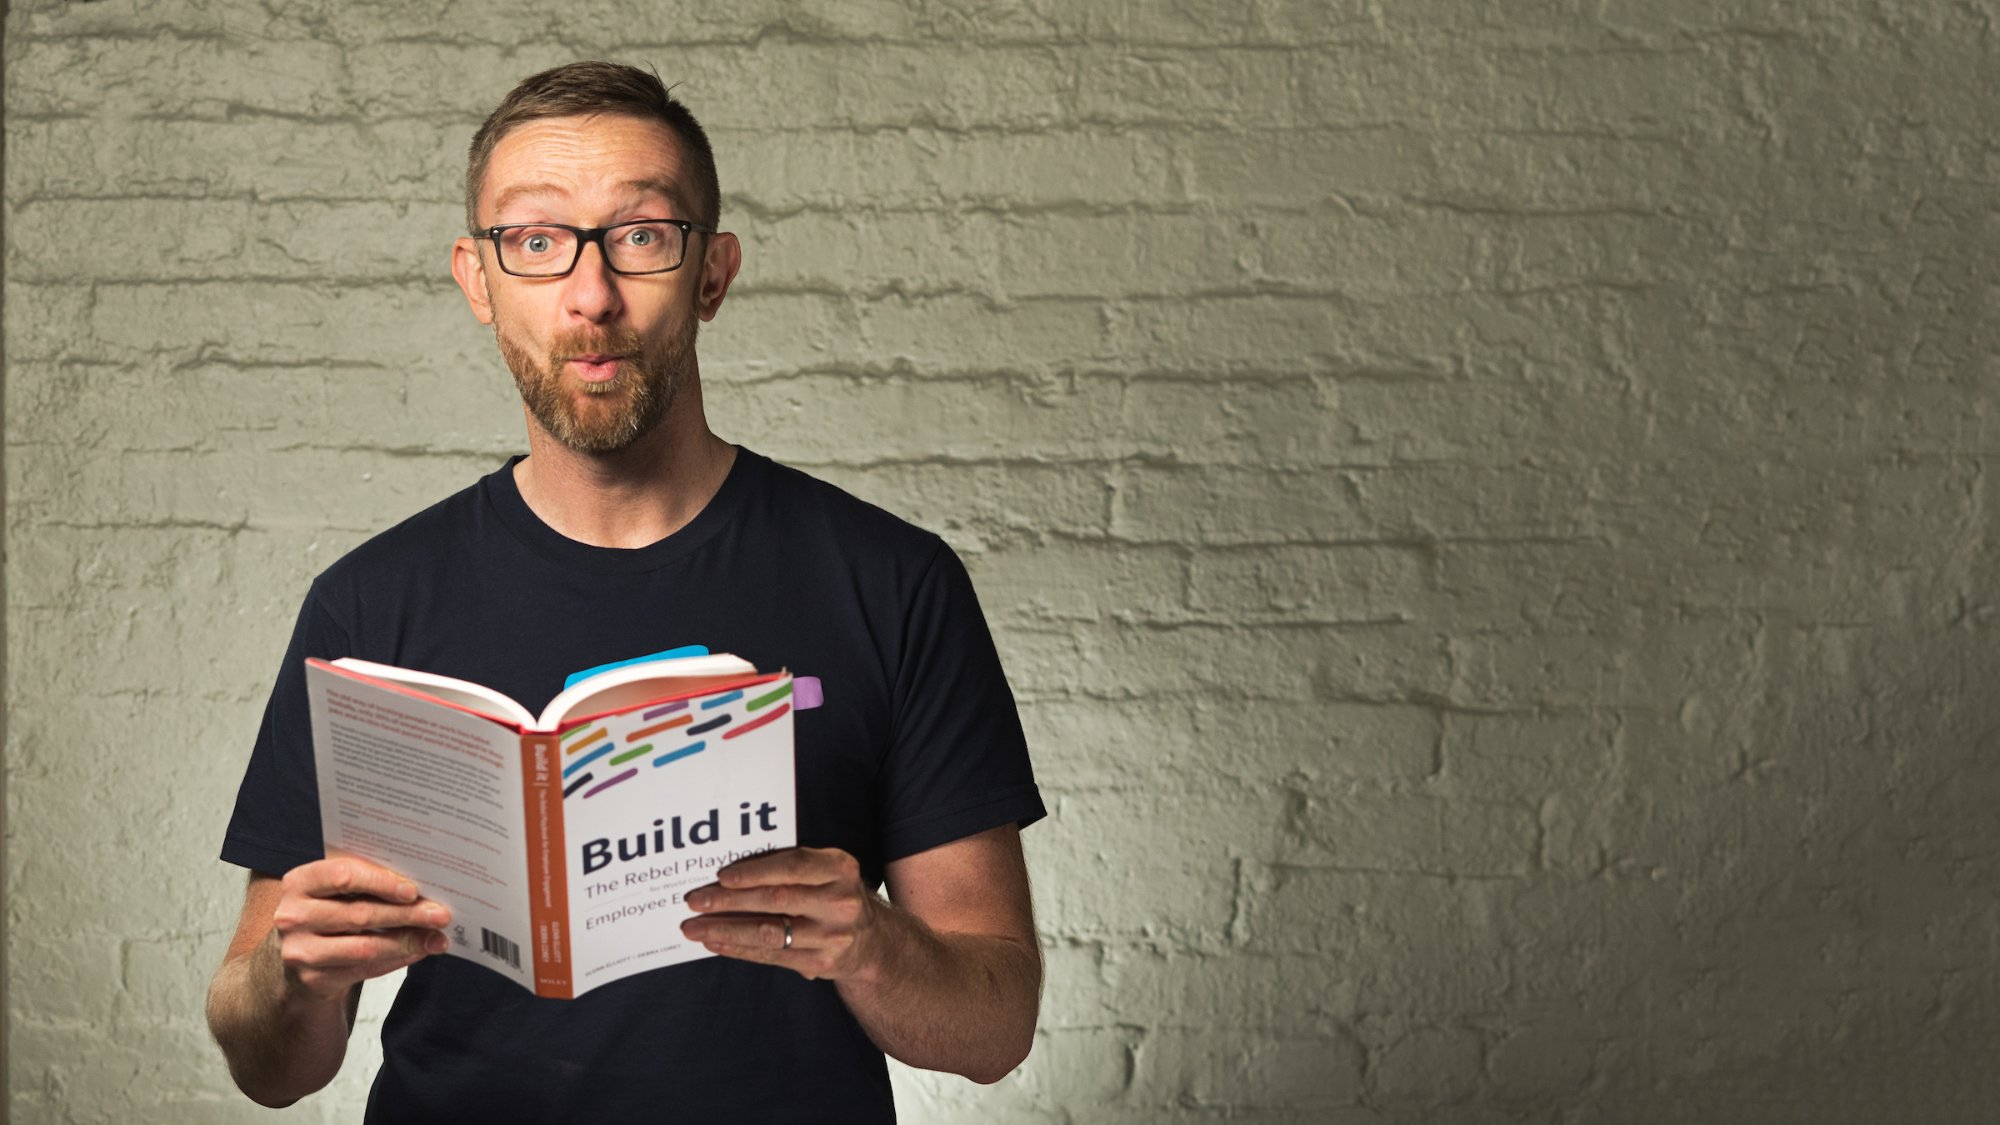 Author Glenn Elliott with Build it - The Rebel Playbook for Employee Engagement